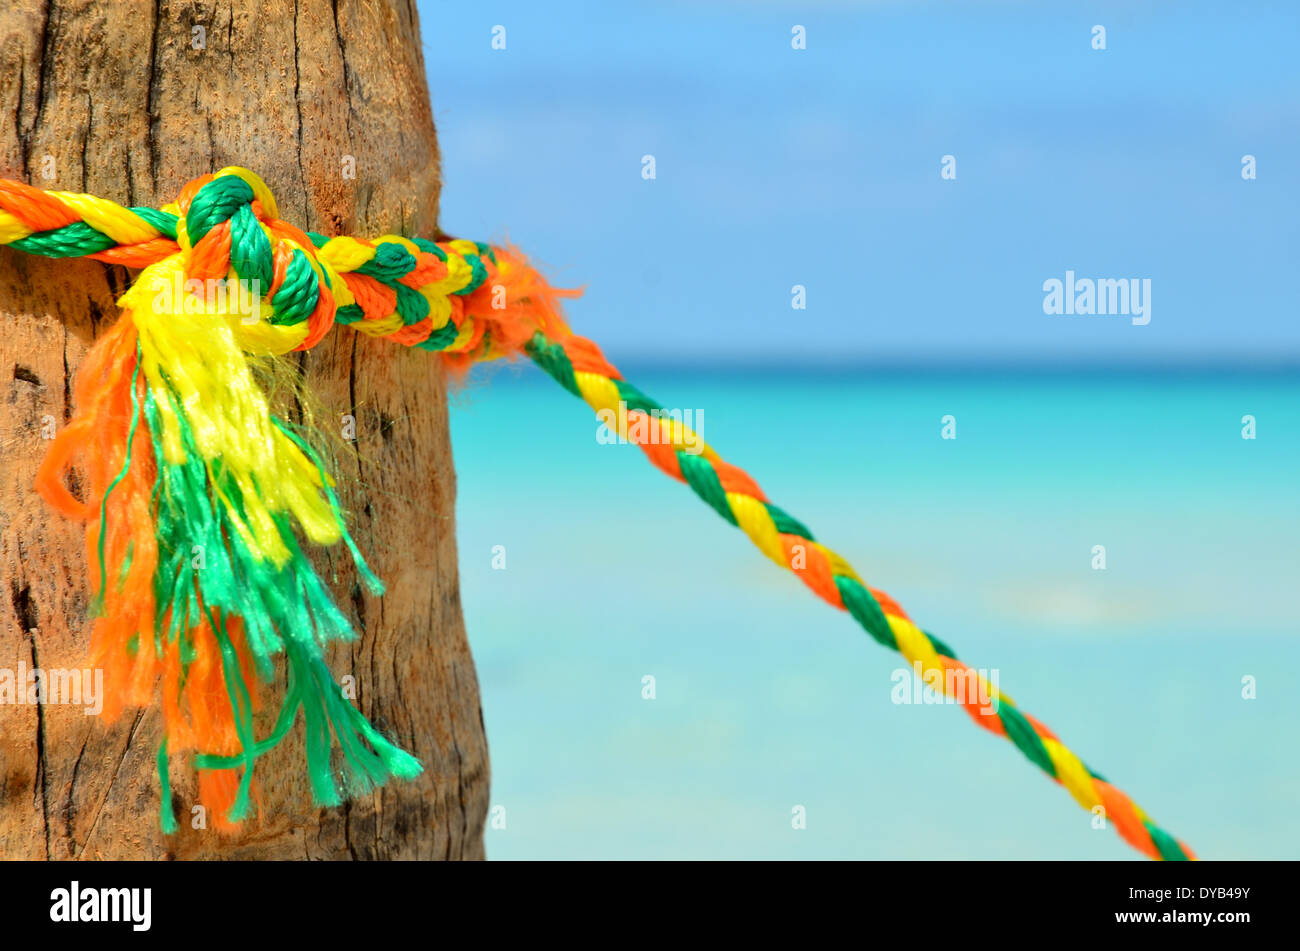 color ful rope on pole - Stock Image